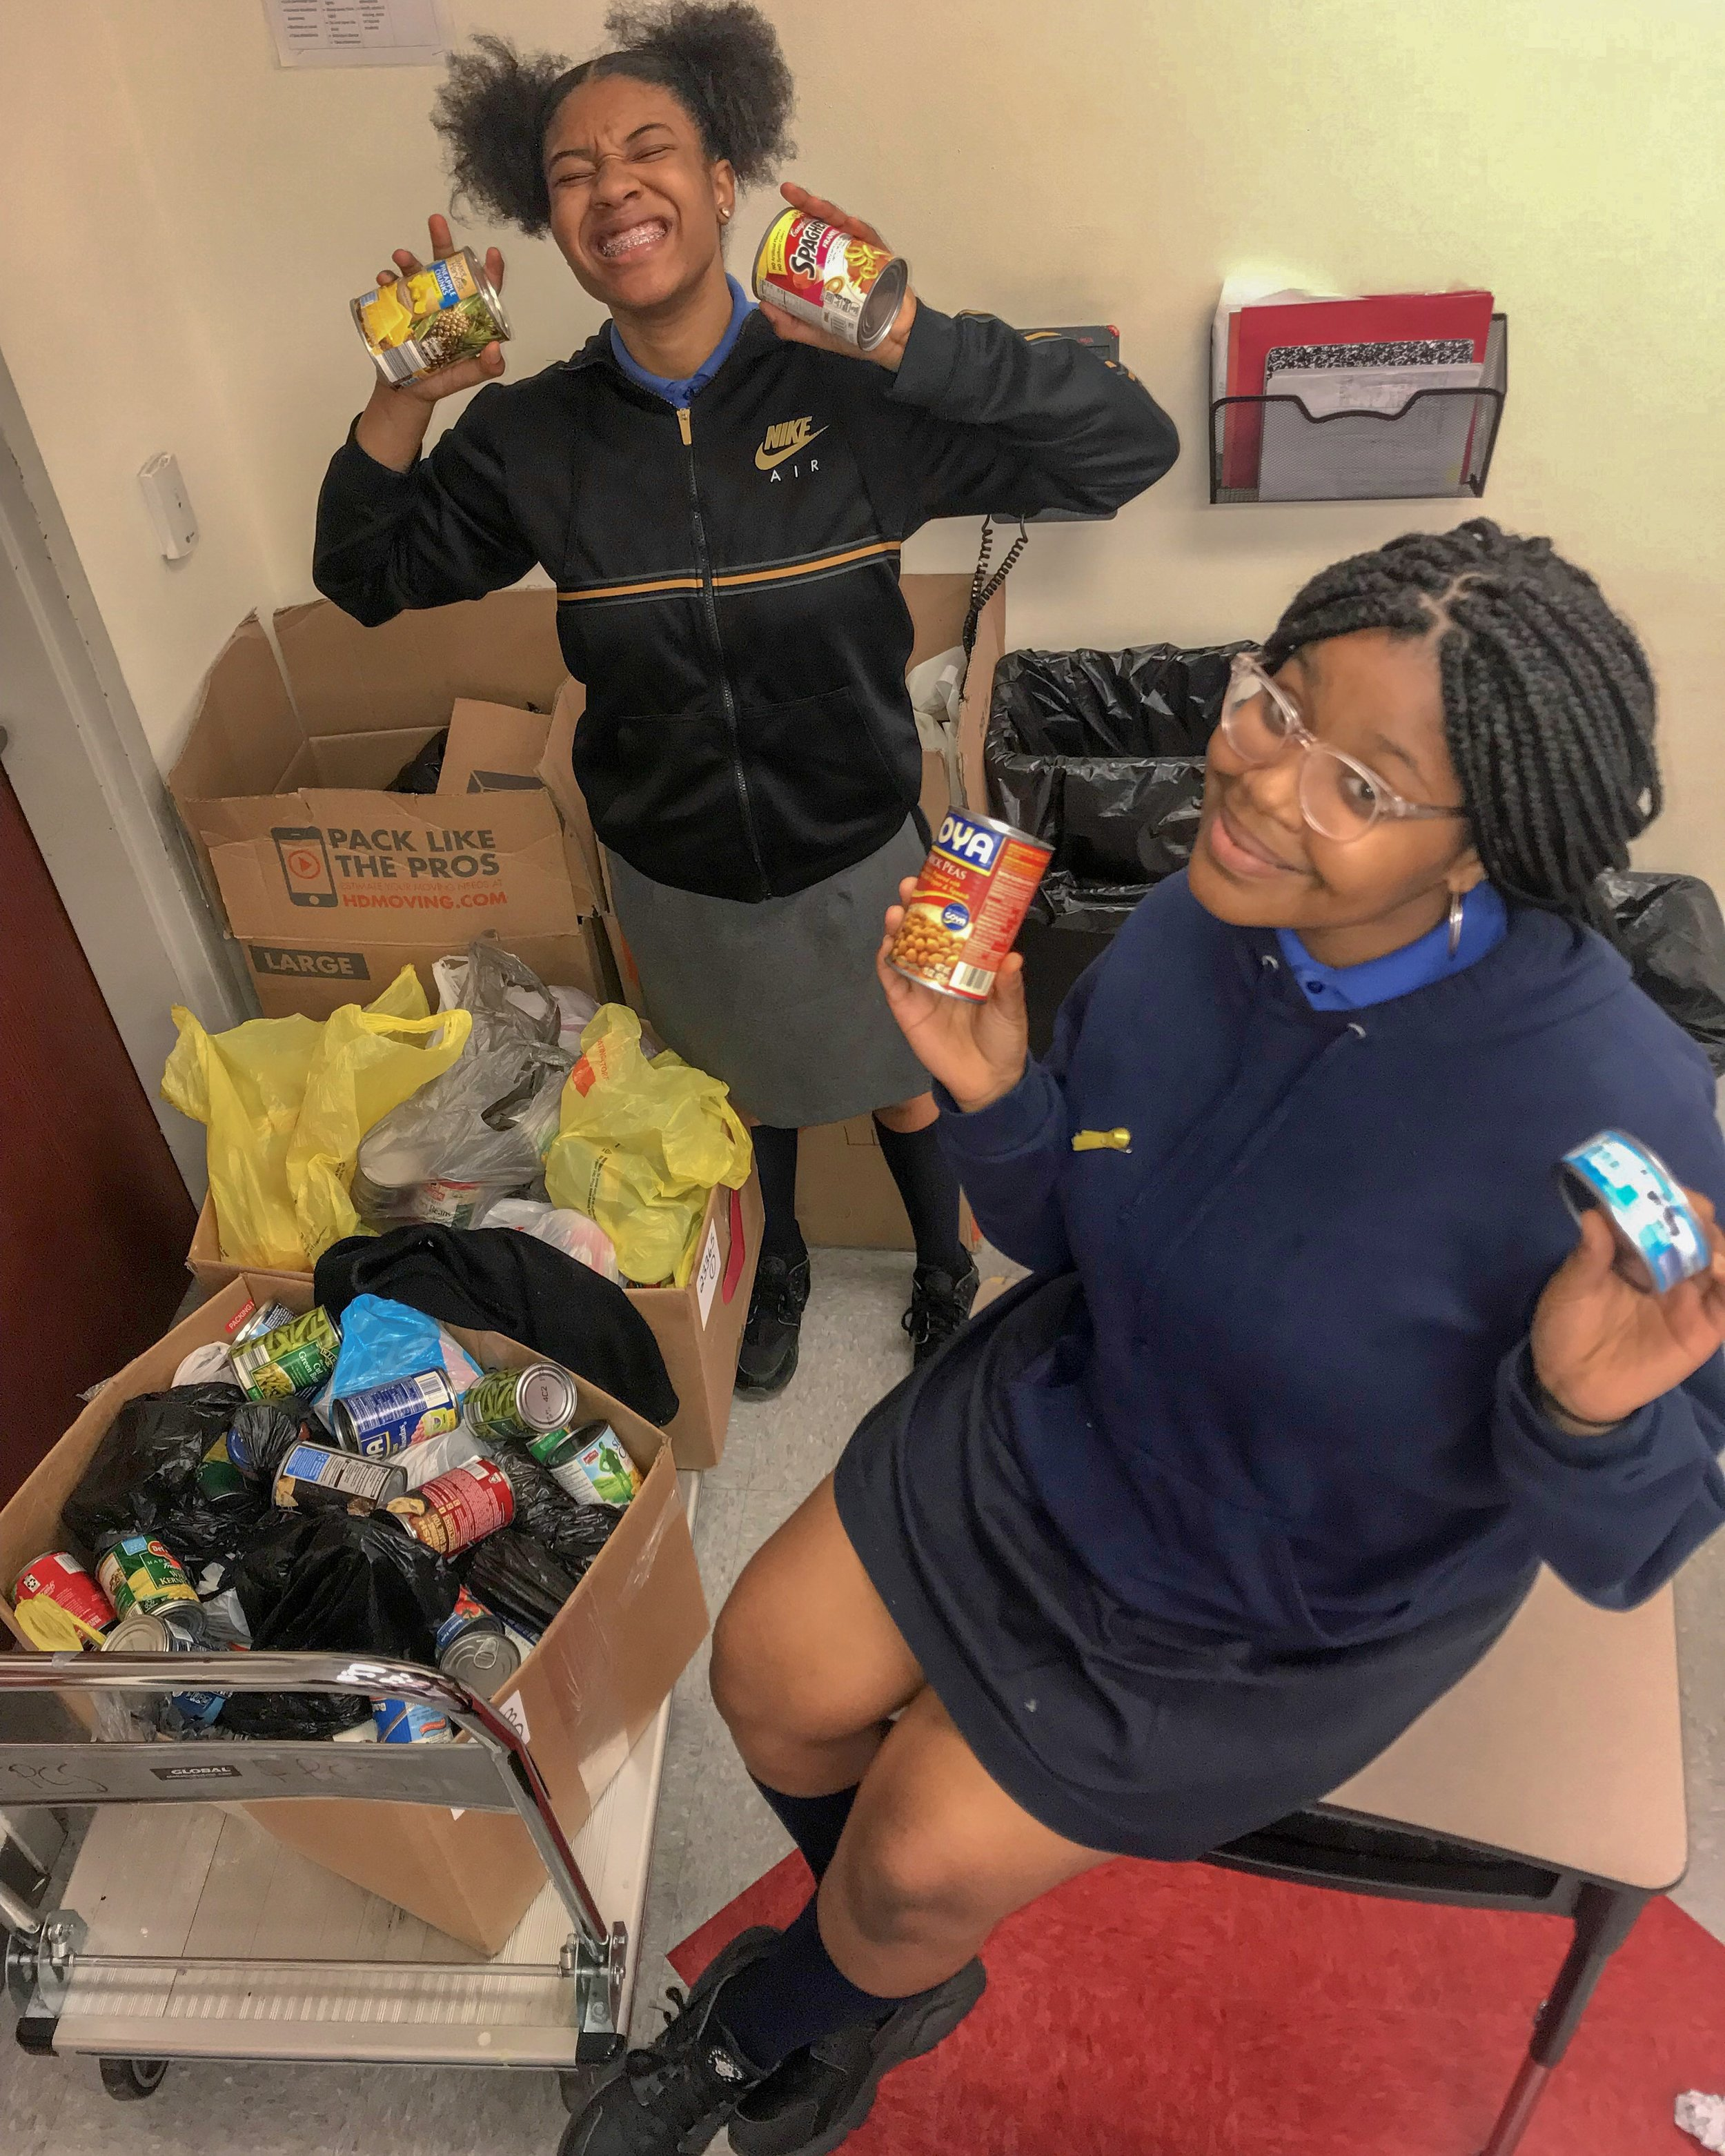 Pretty Pride raised more than 200 clothing and food products to donate to The Morris Home, a safe-haven for recovering transgender individuals.